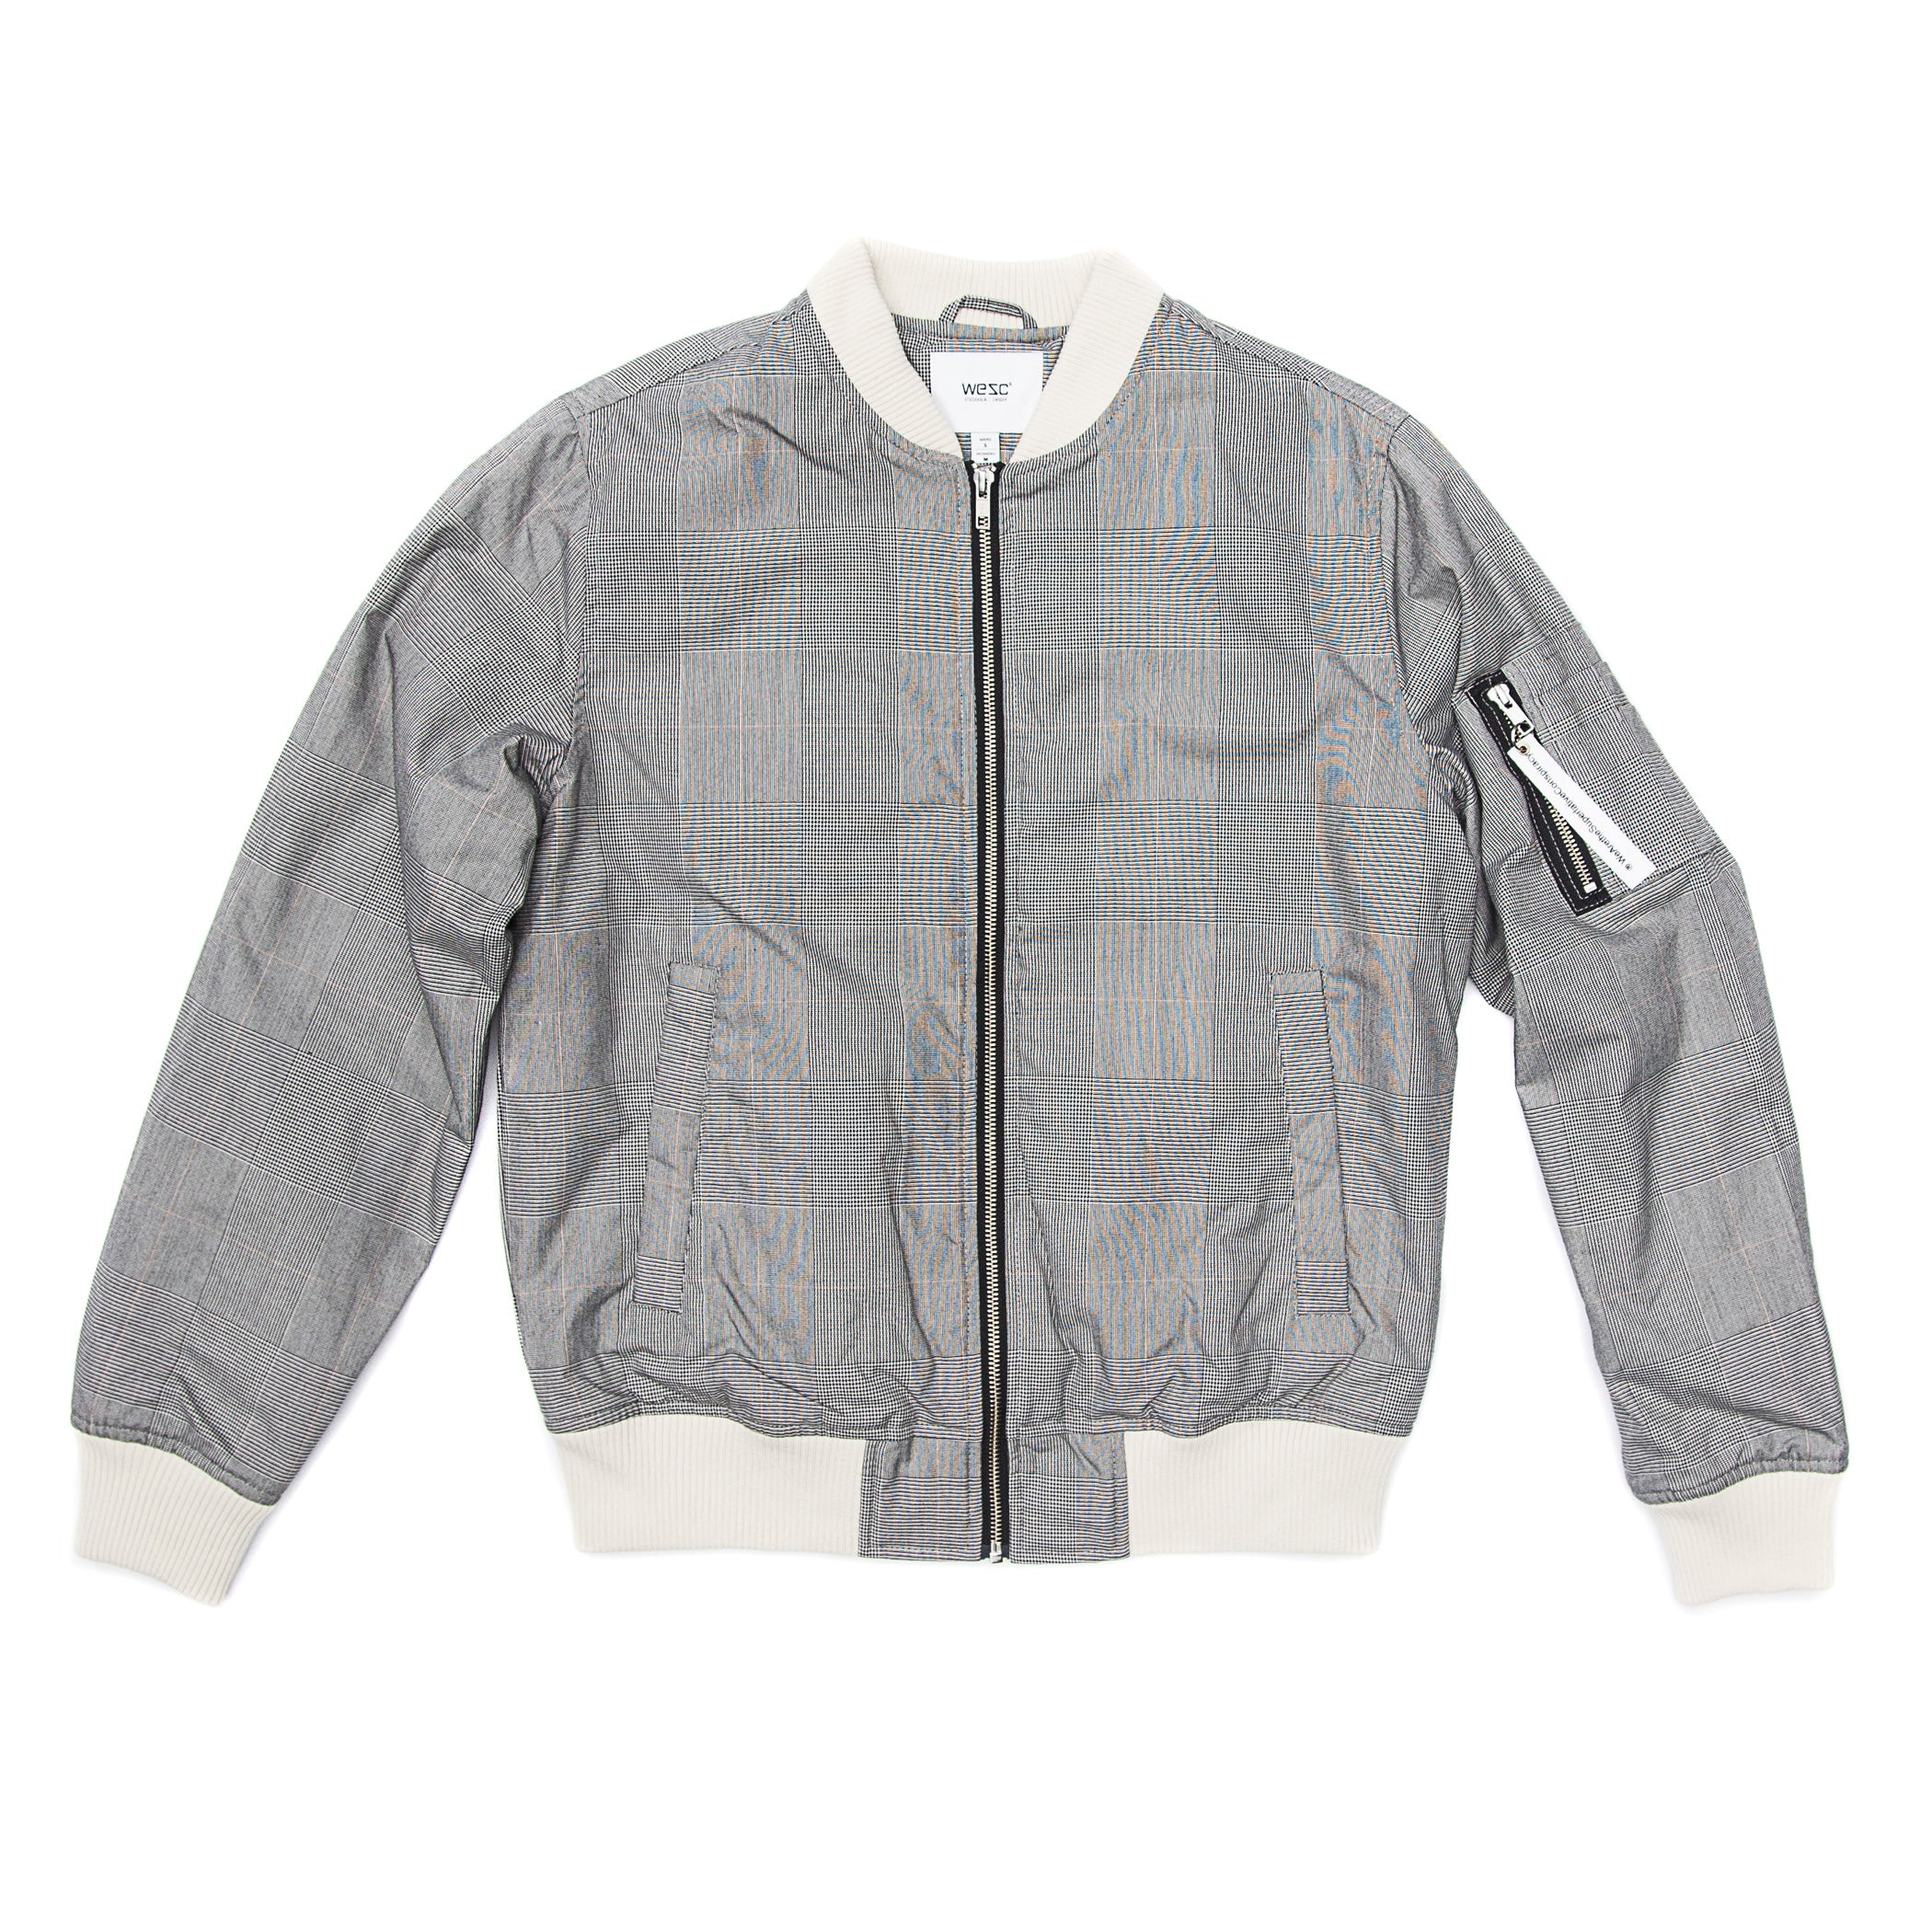 WeSC - Checked Bomber